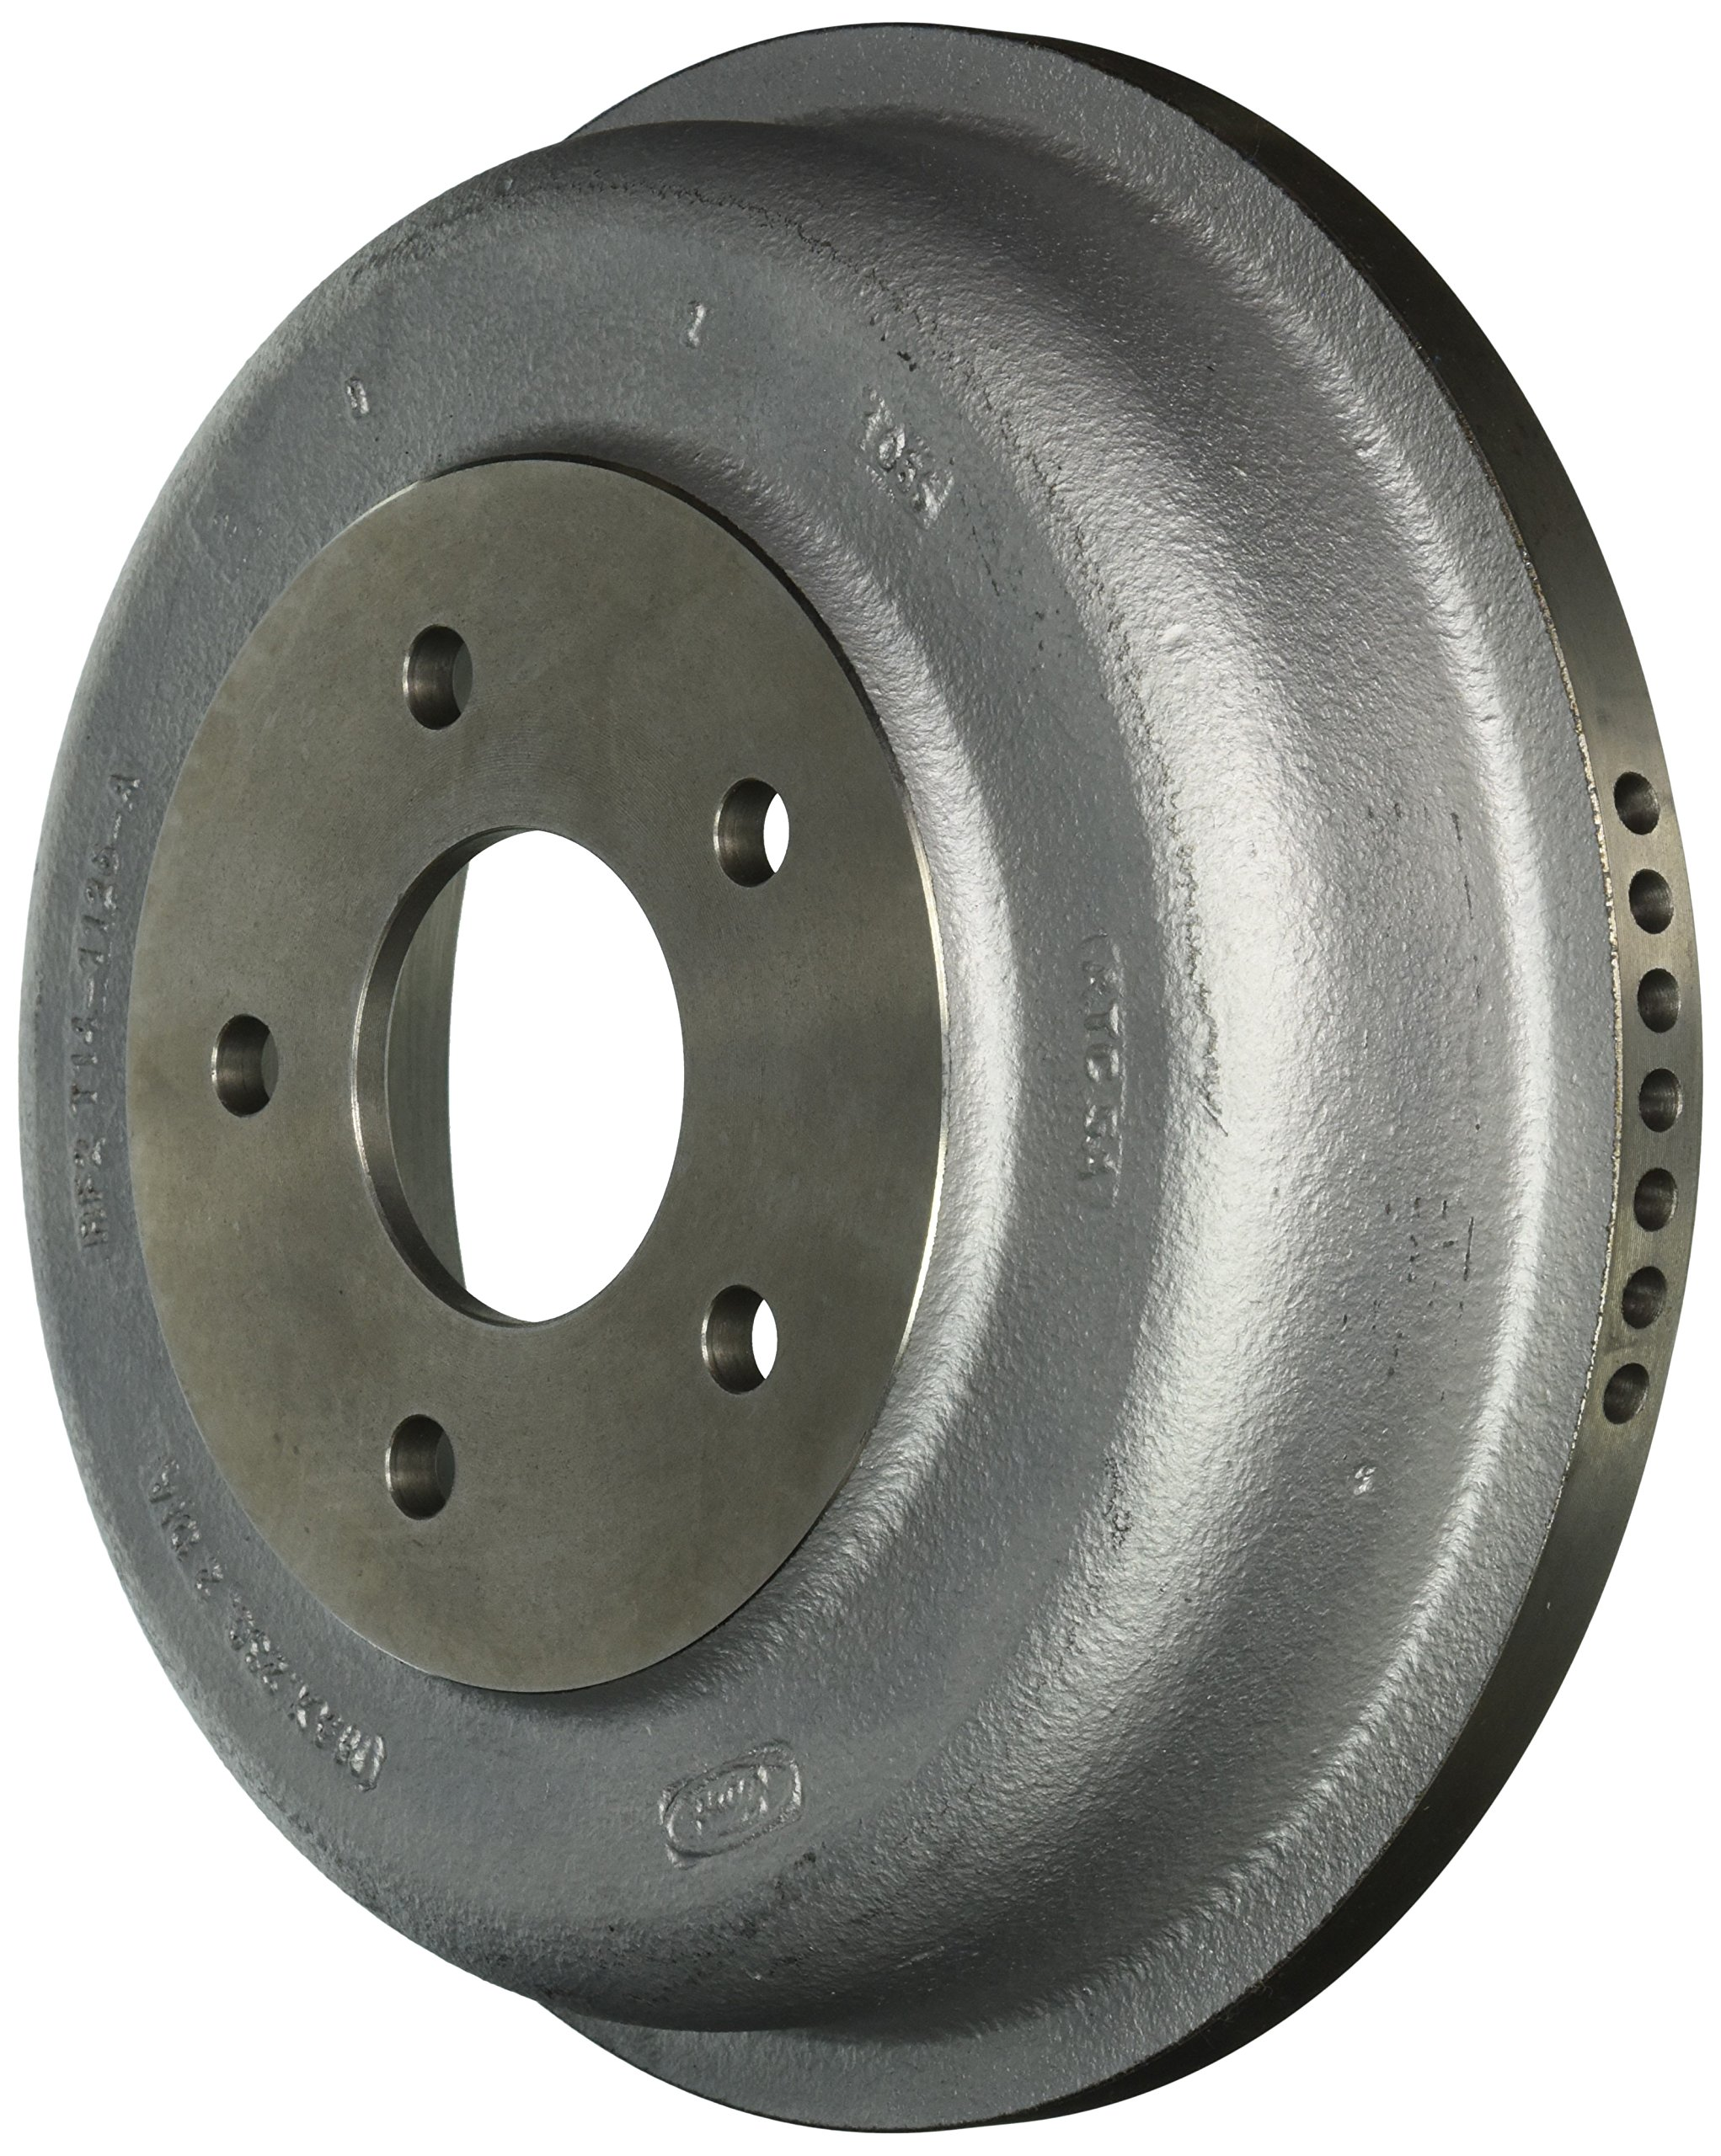 Motorcraft BRDF-11 Rear Drum Brake